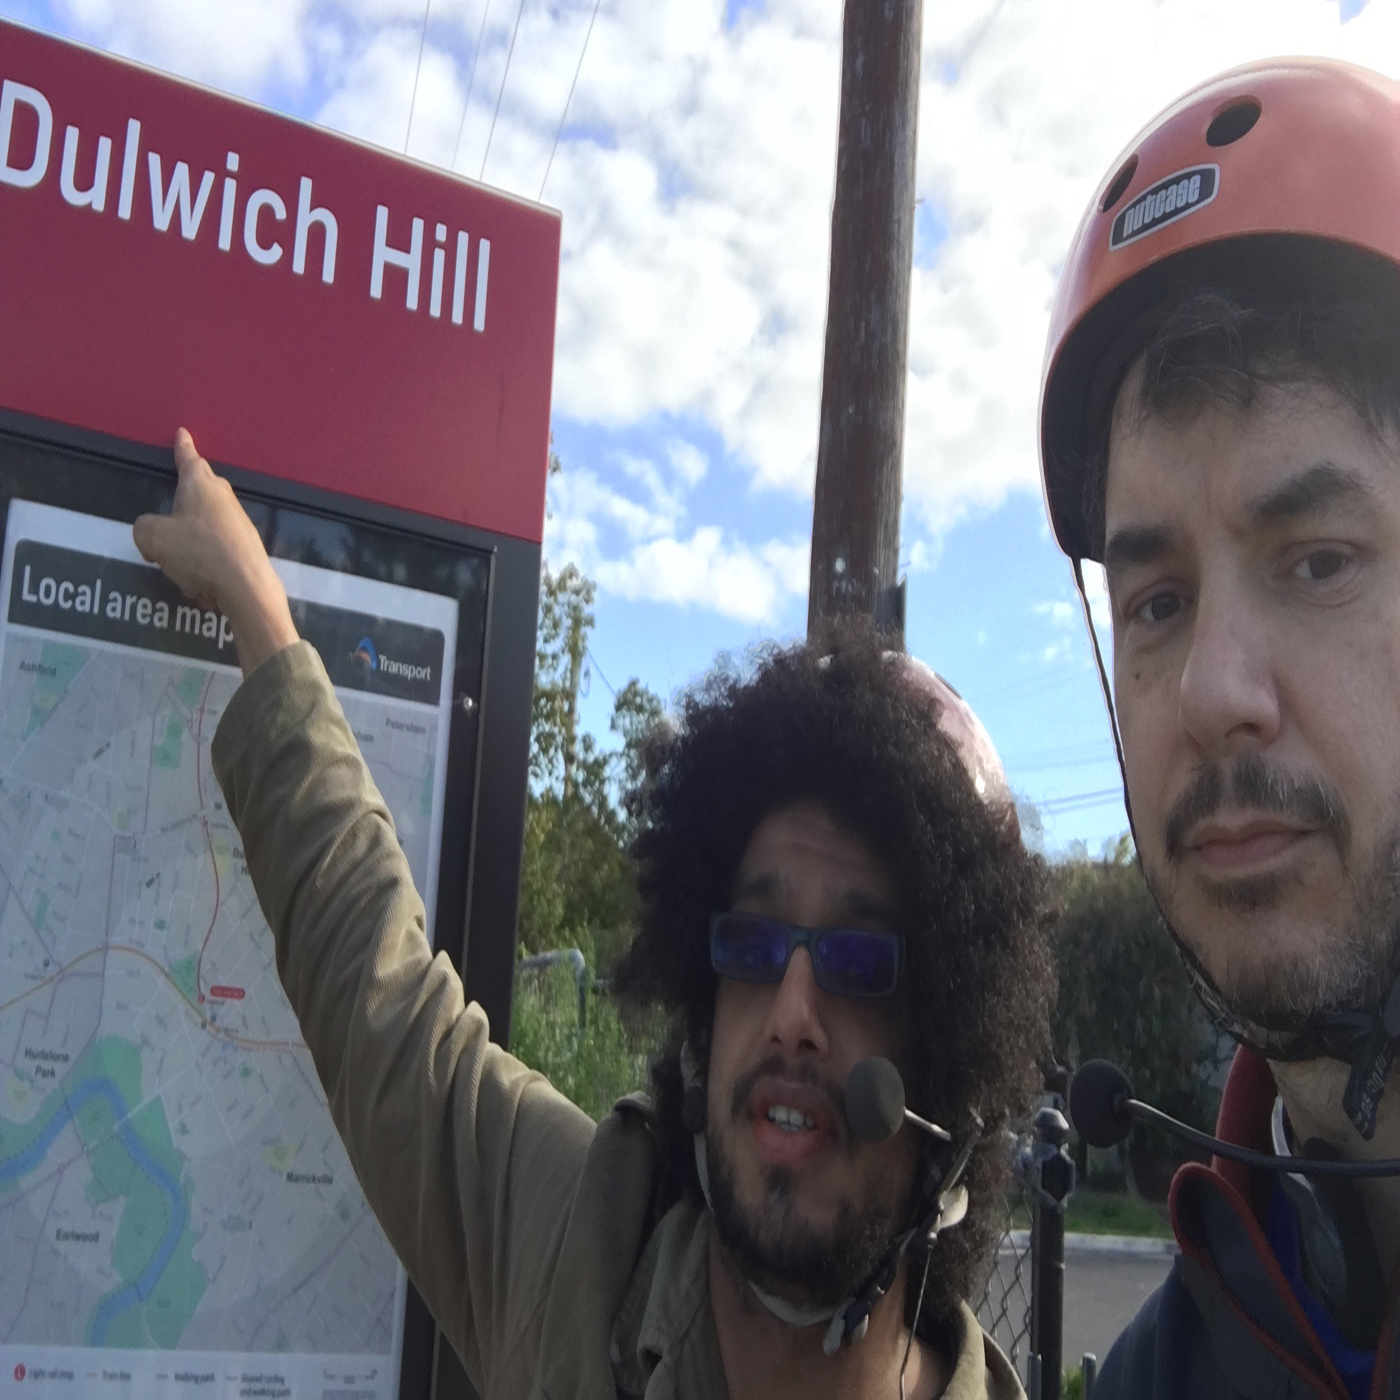 Episode 44 - Dulwich Hill